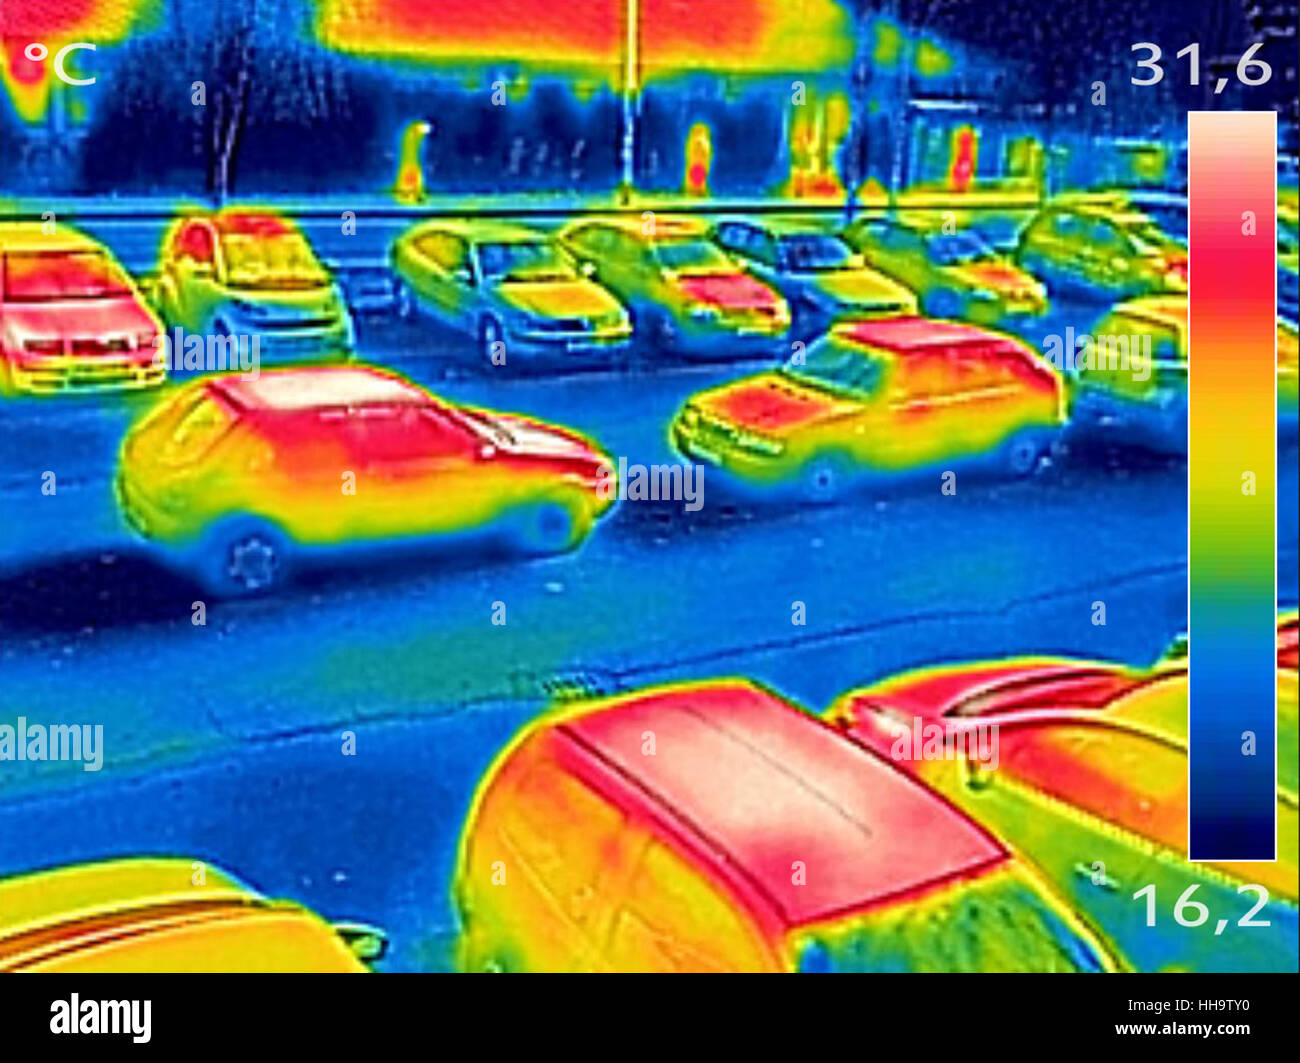 Thermal image showing parked cars at town parking lot - Stock Image